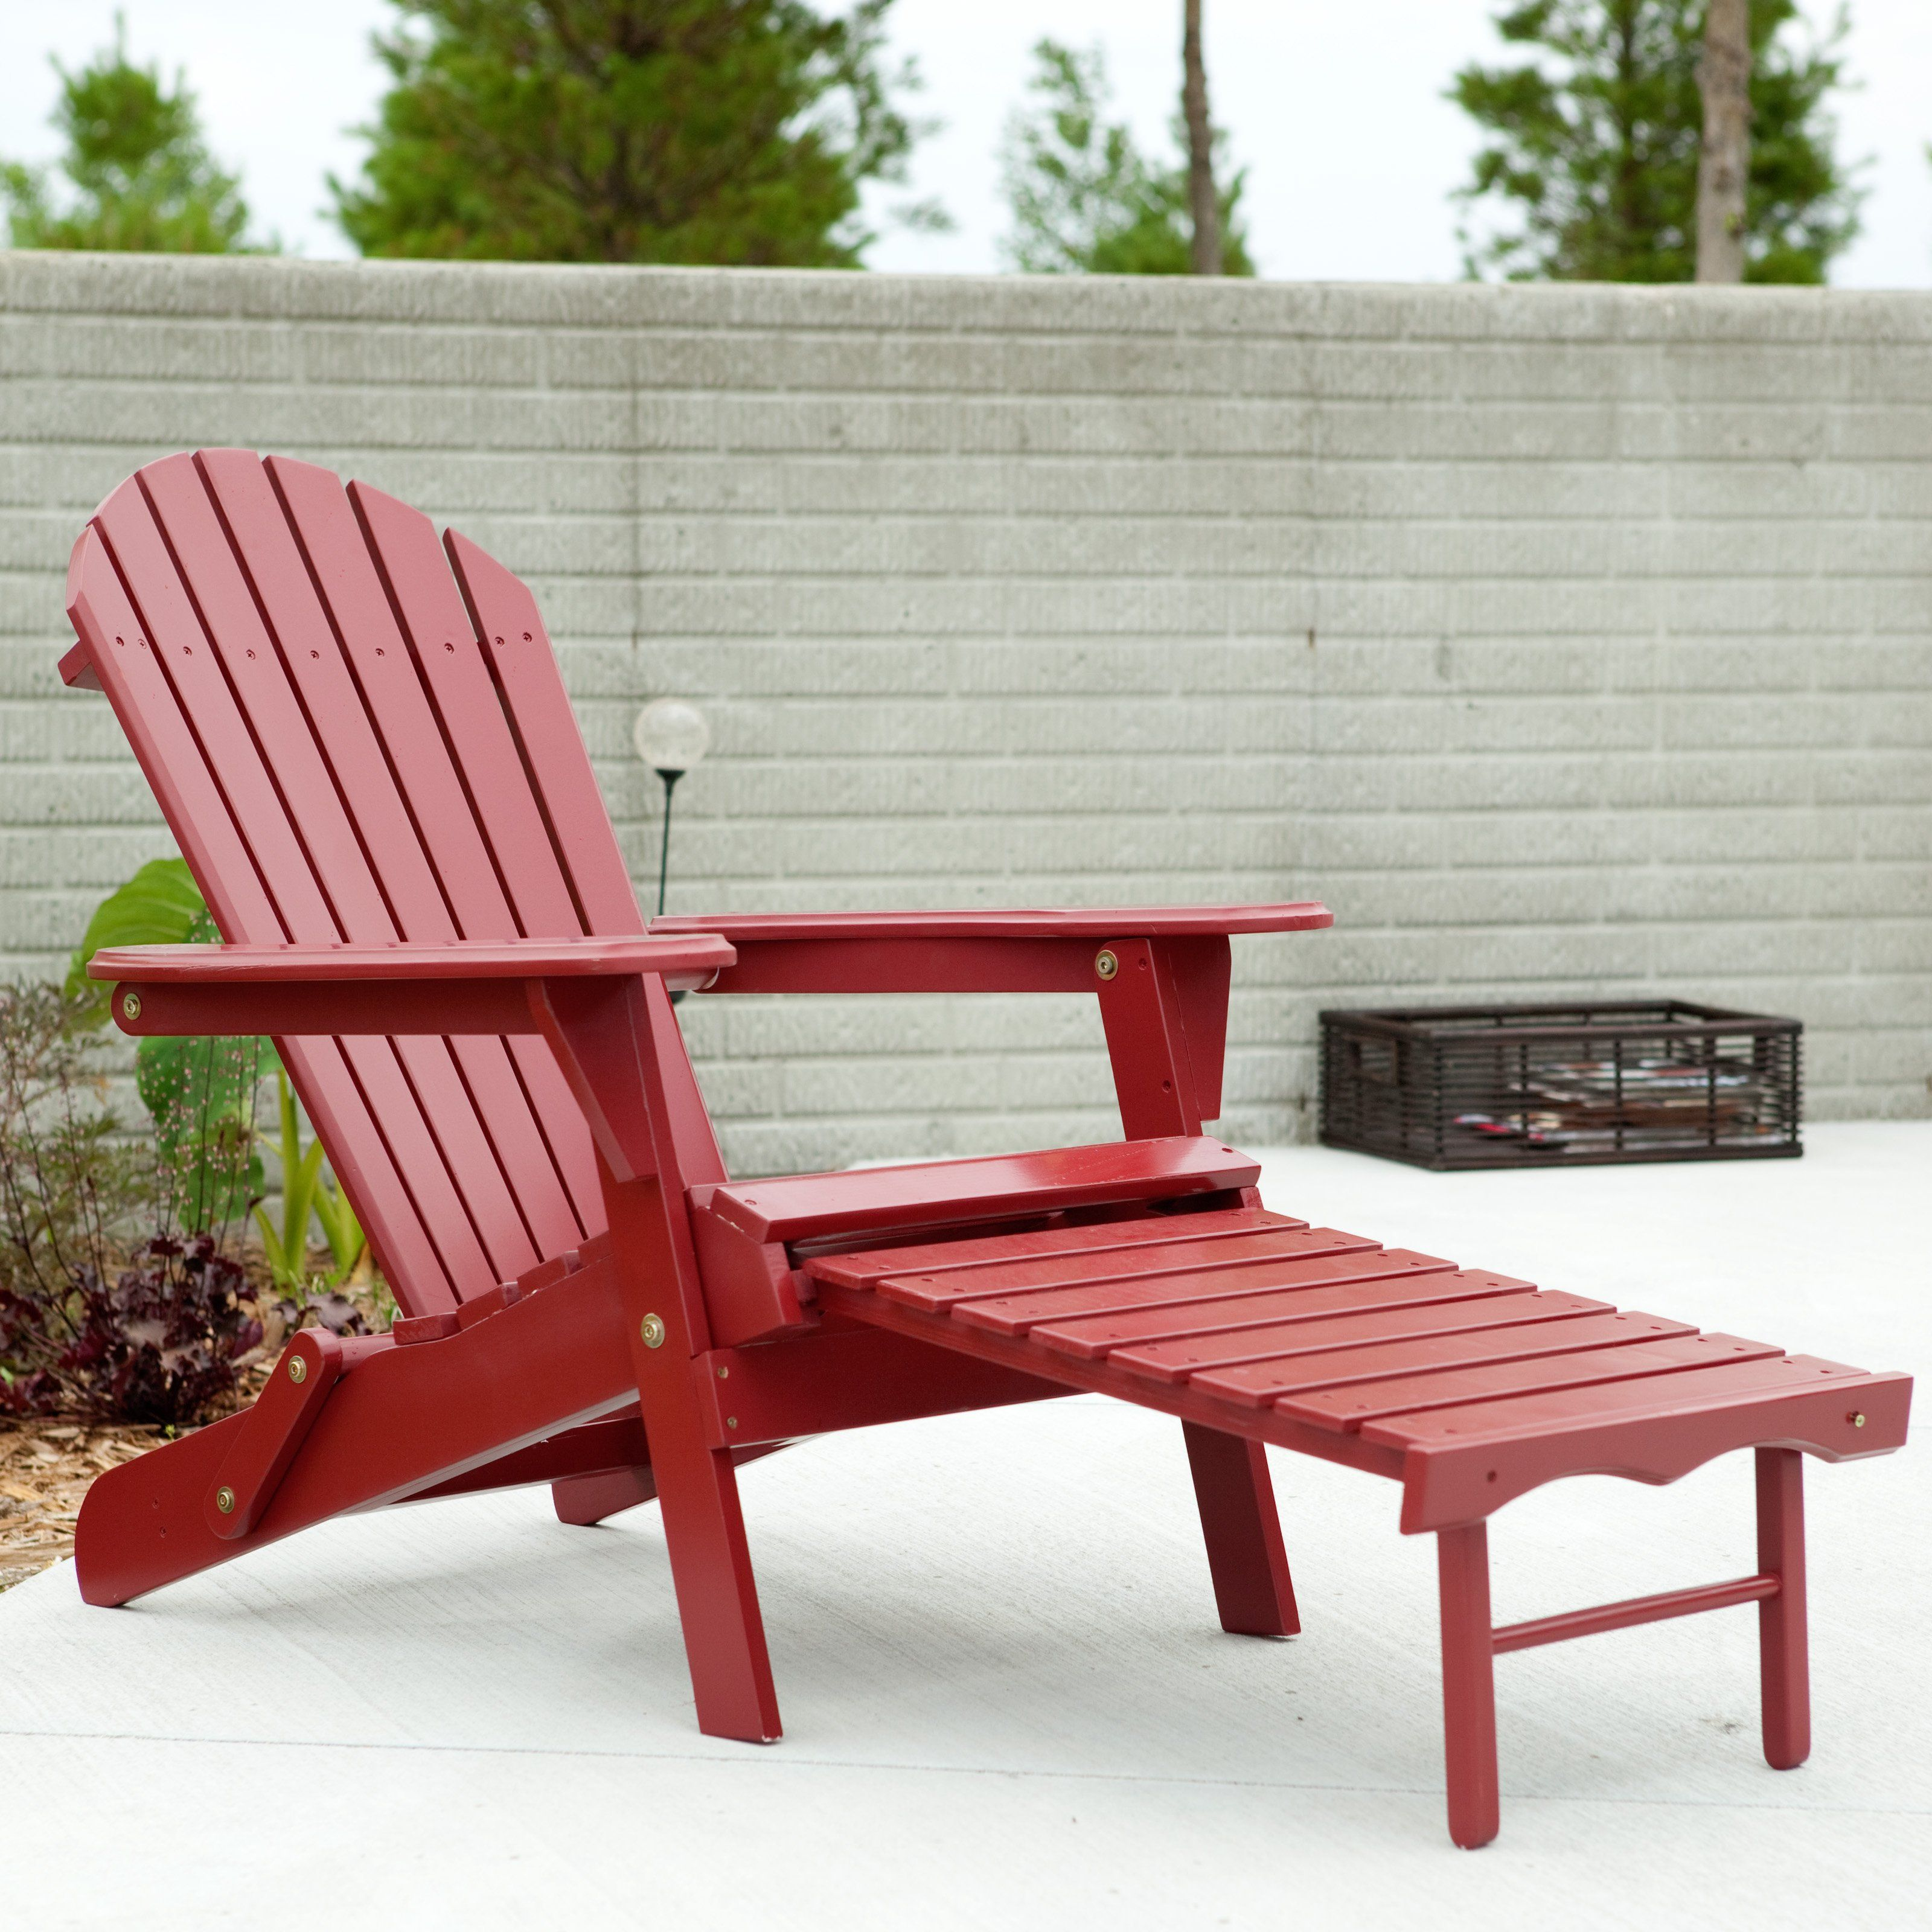 Patio Daddy O Furniture: Have To Have It. Big Daddy Adirondack Chair With Pull Out